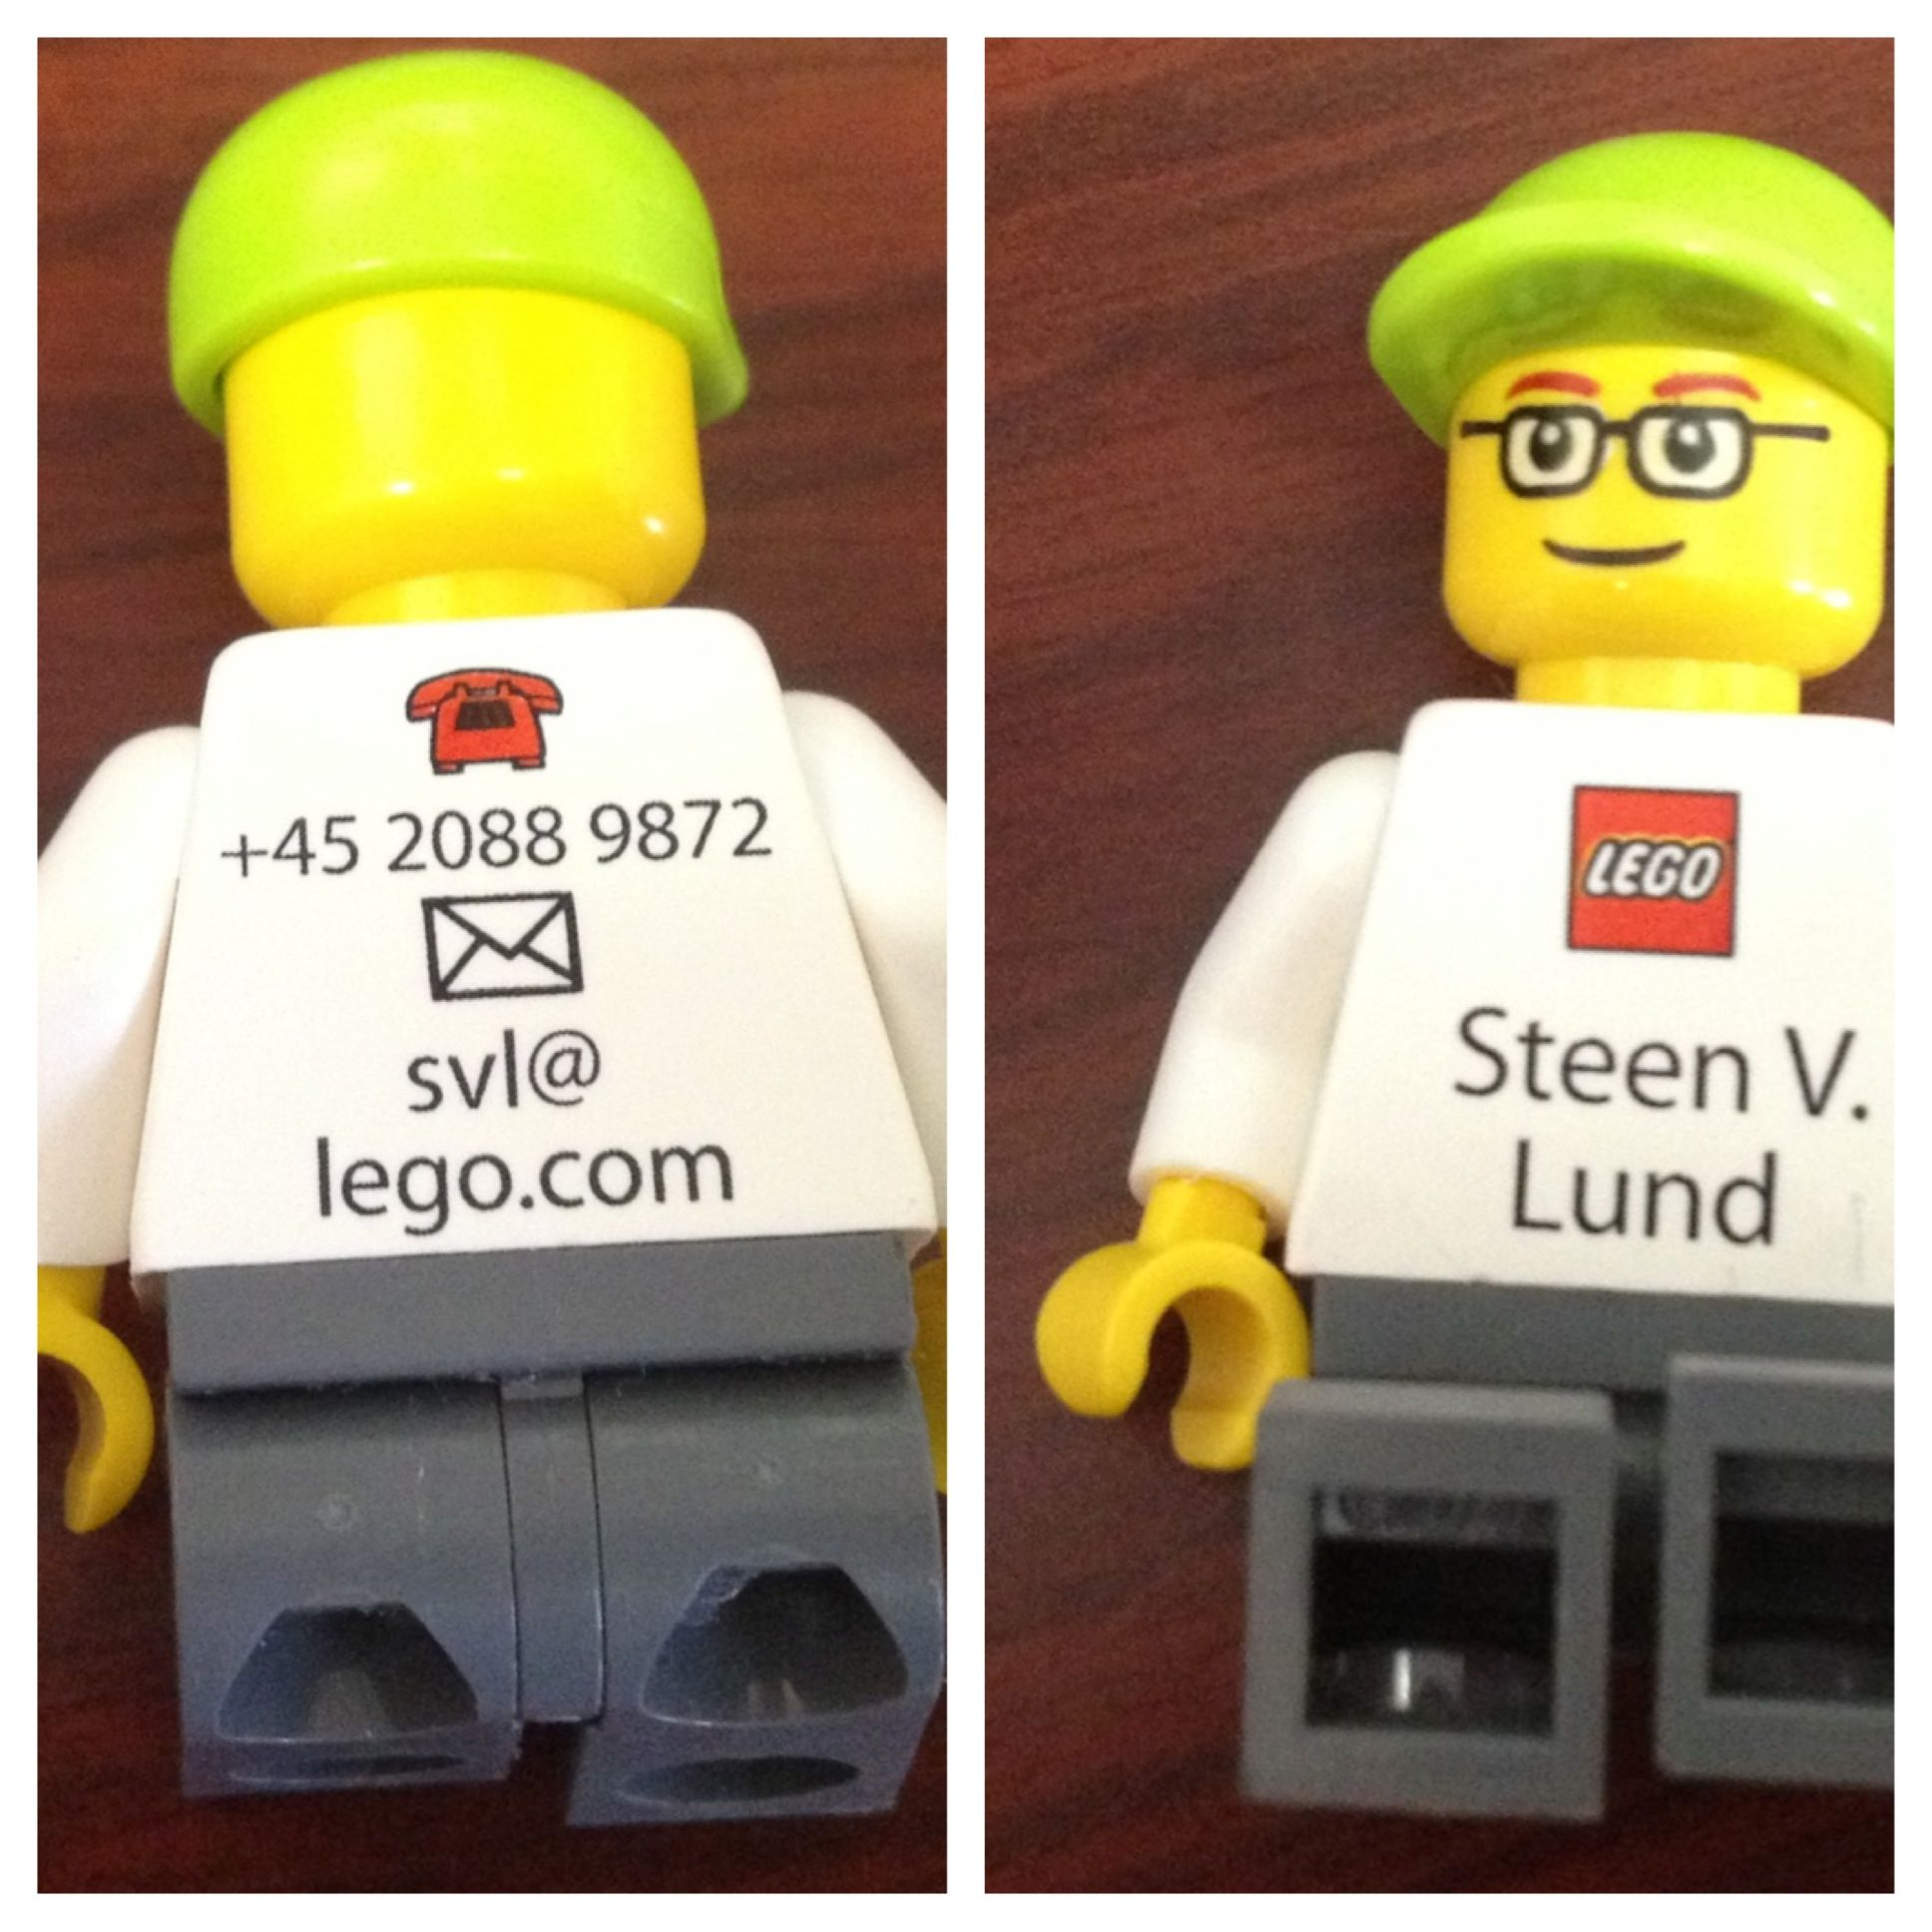 LEGO business card! My brothers should have business cards like this ...